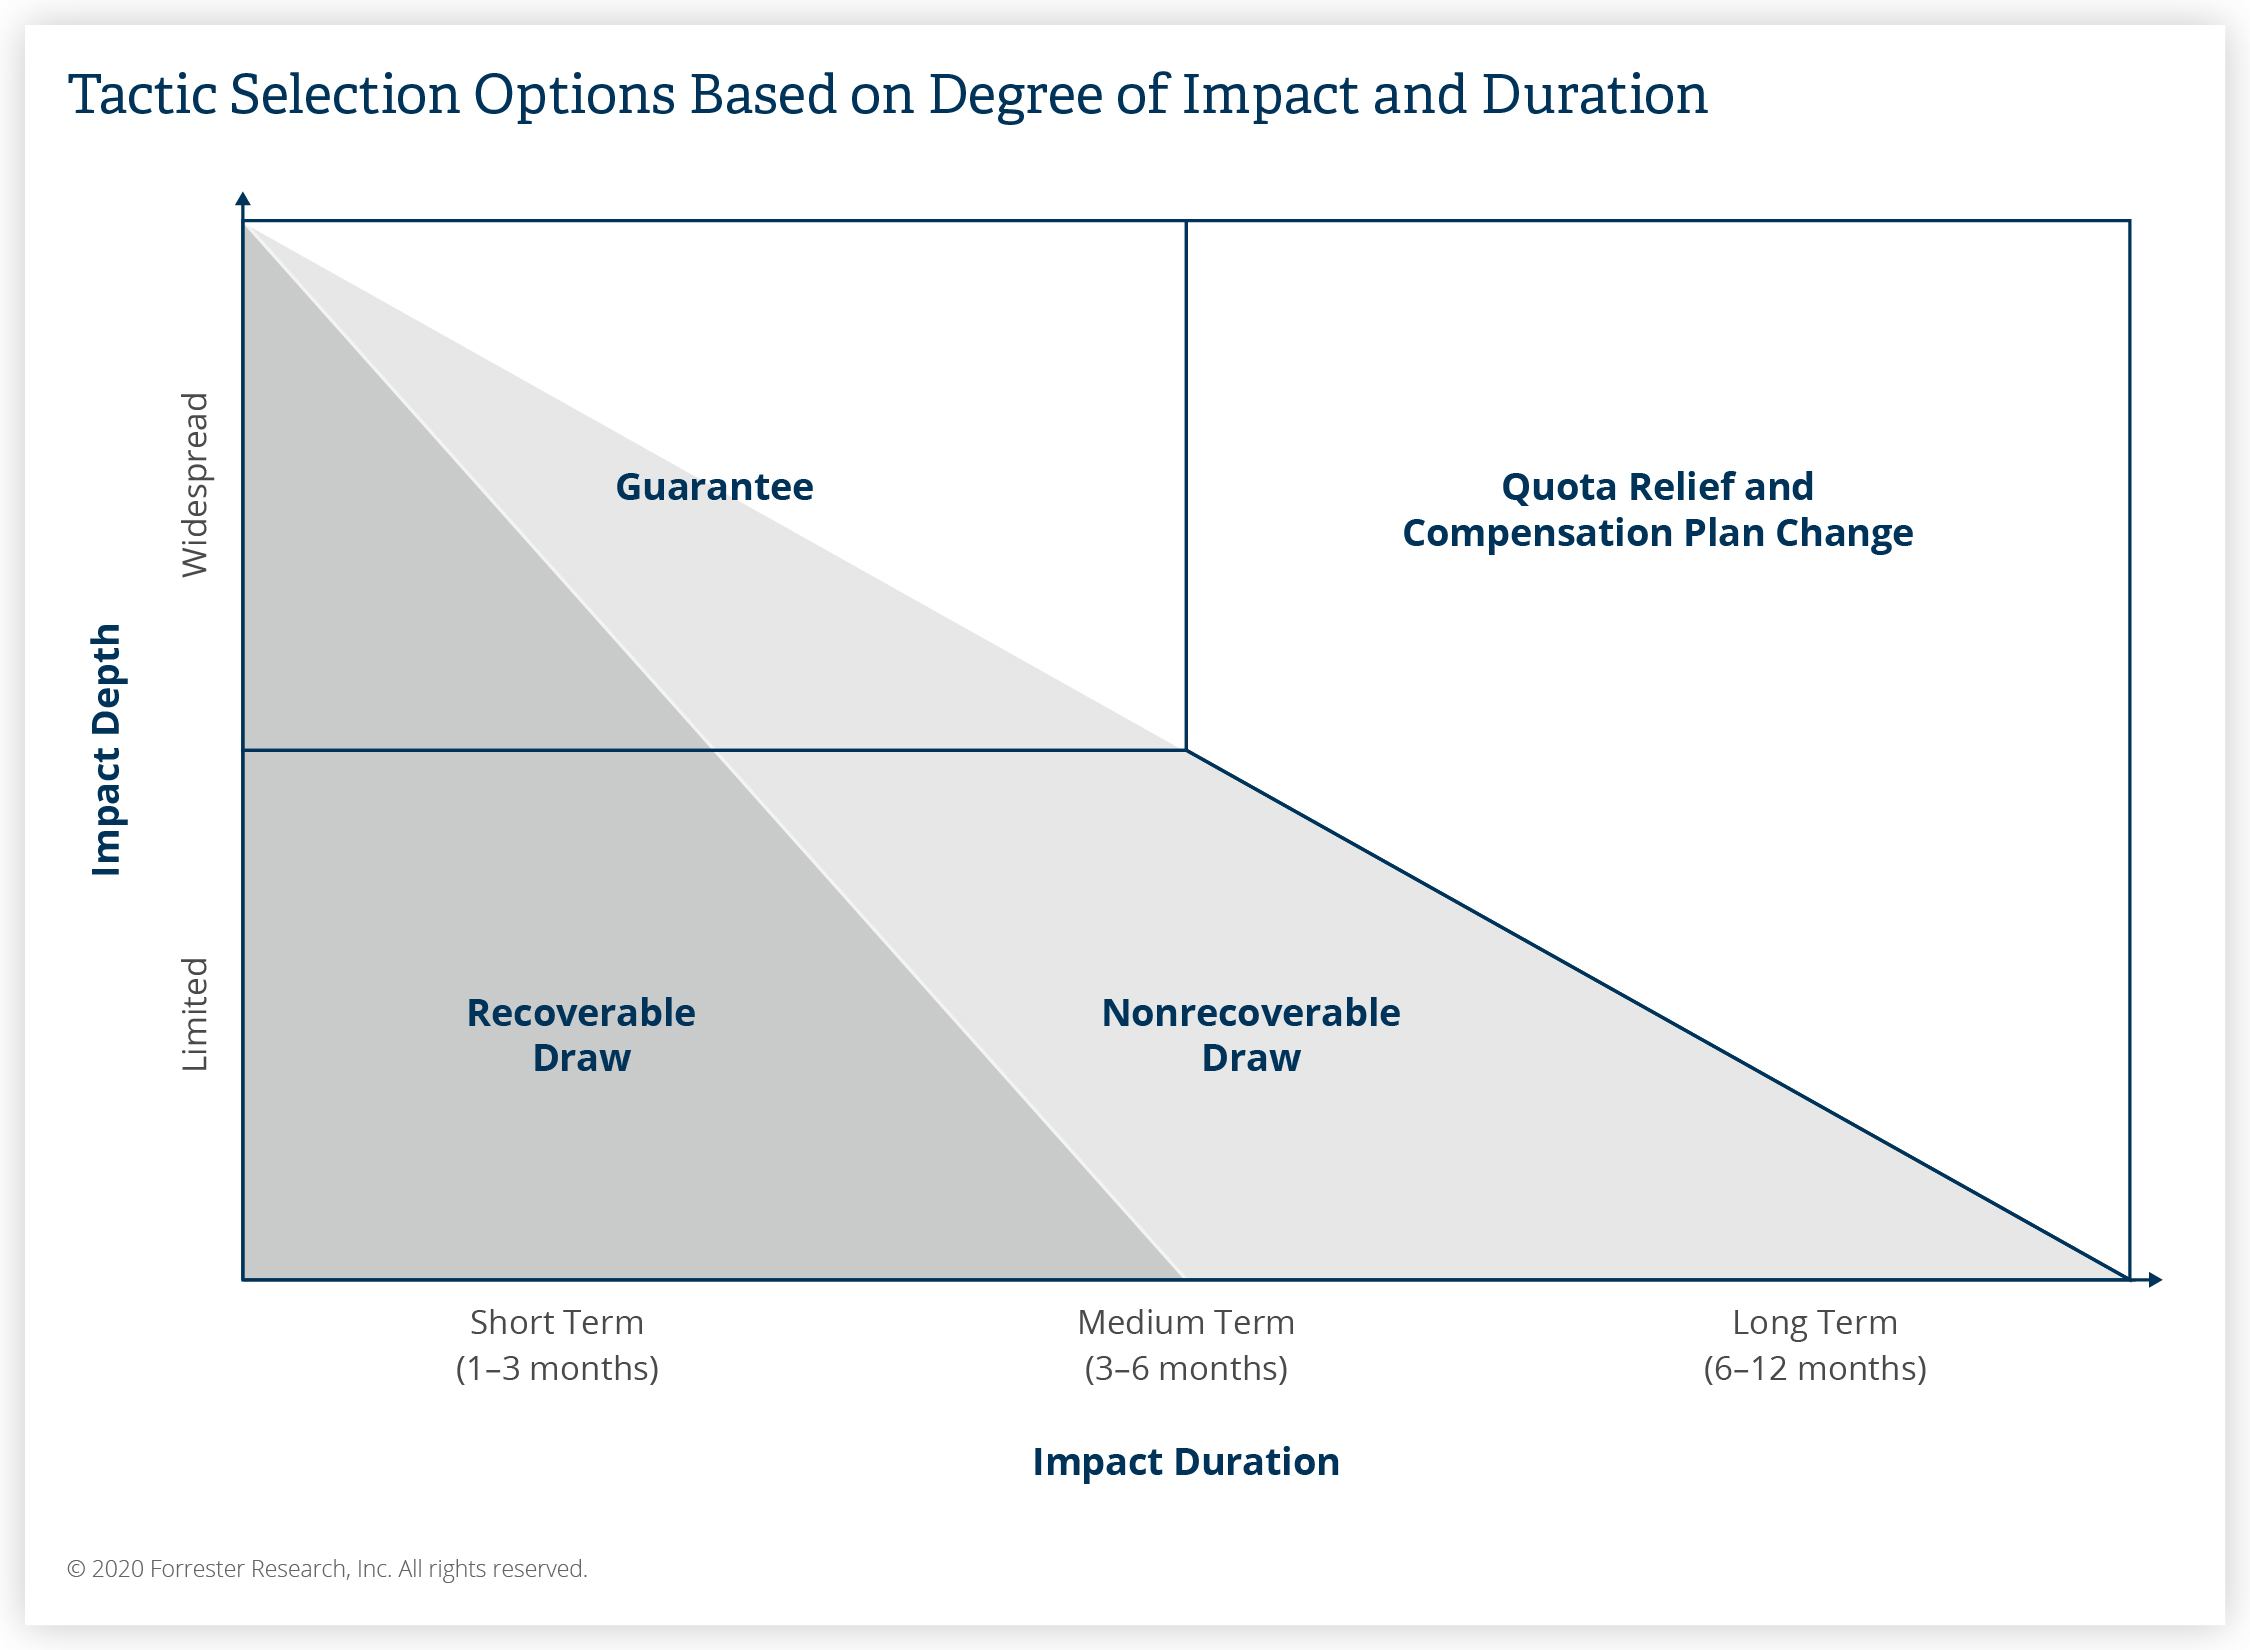 Tactic Selection Options Based on Degree of Impact and Duration